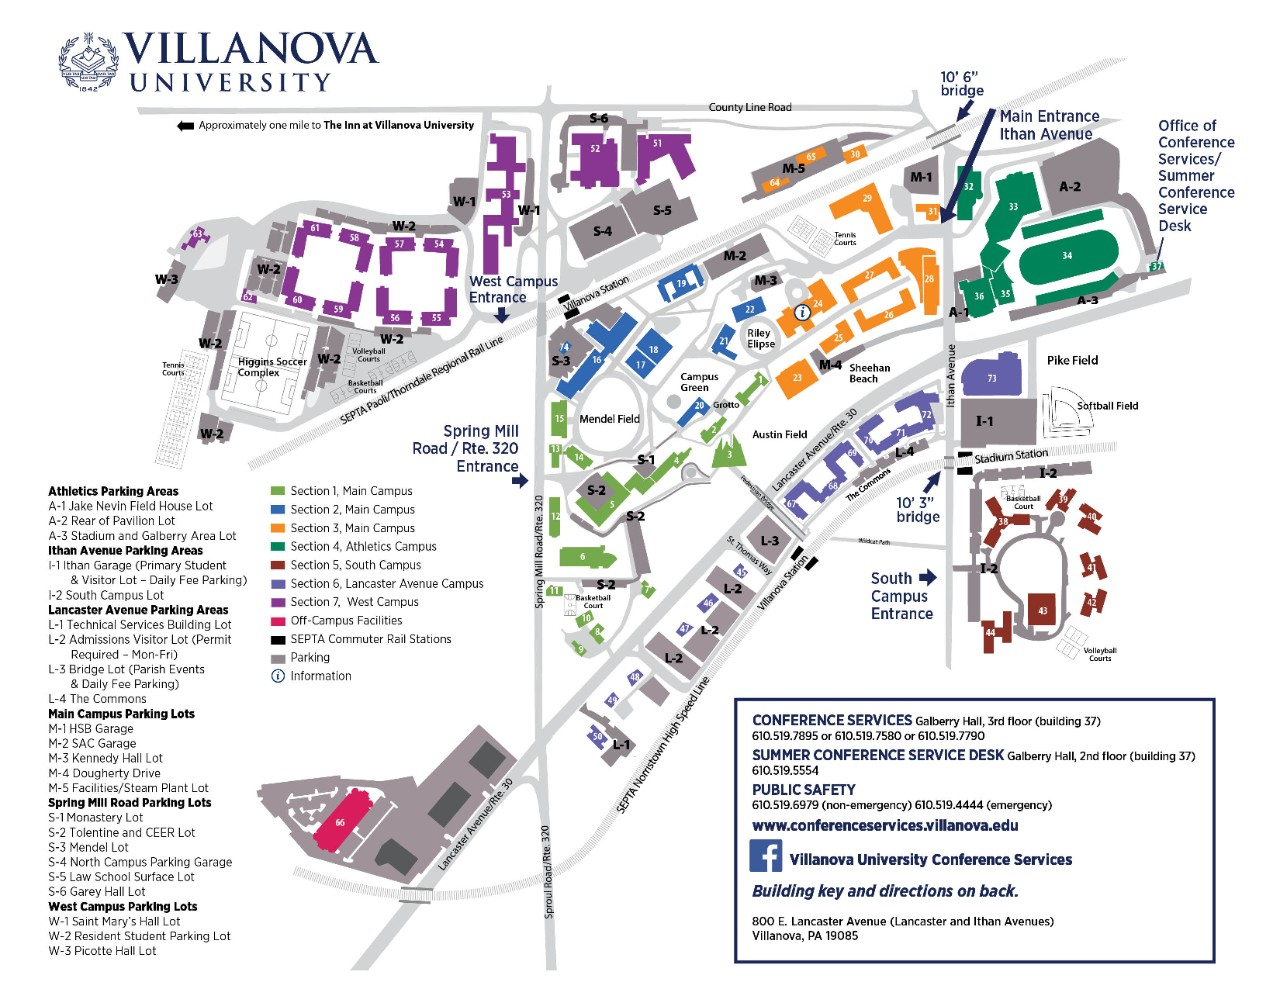 Campus Map and Directions | Villanova University on directions on cell phone, directions on a globe, directions on a ship, directions on a compass rose, directions on a paper,